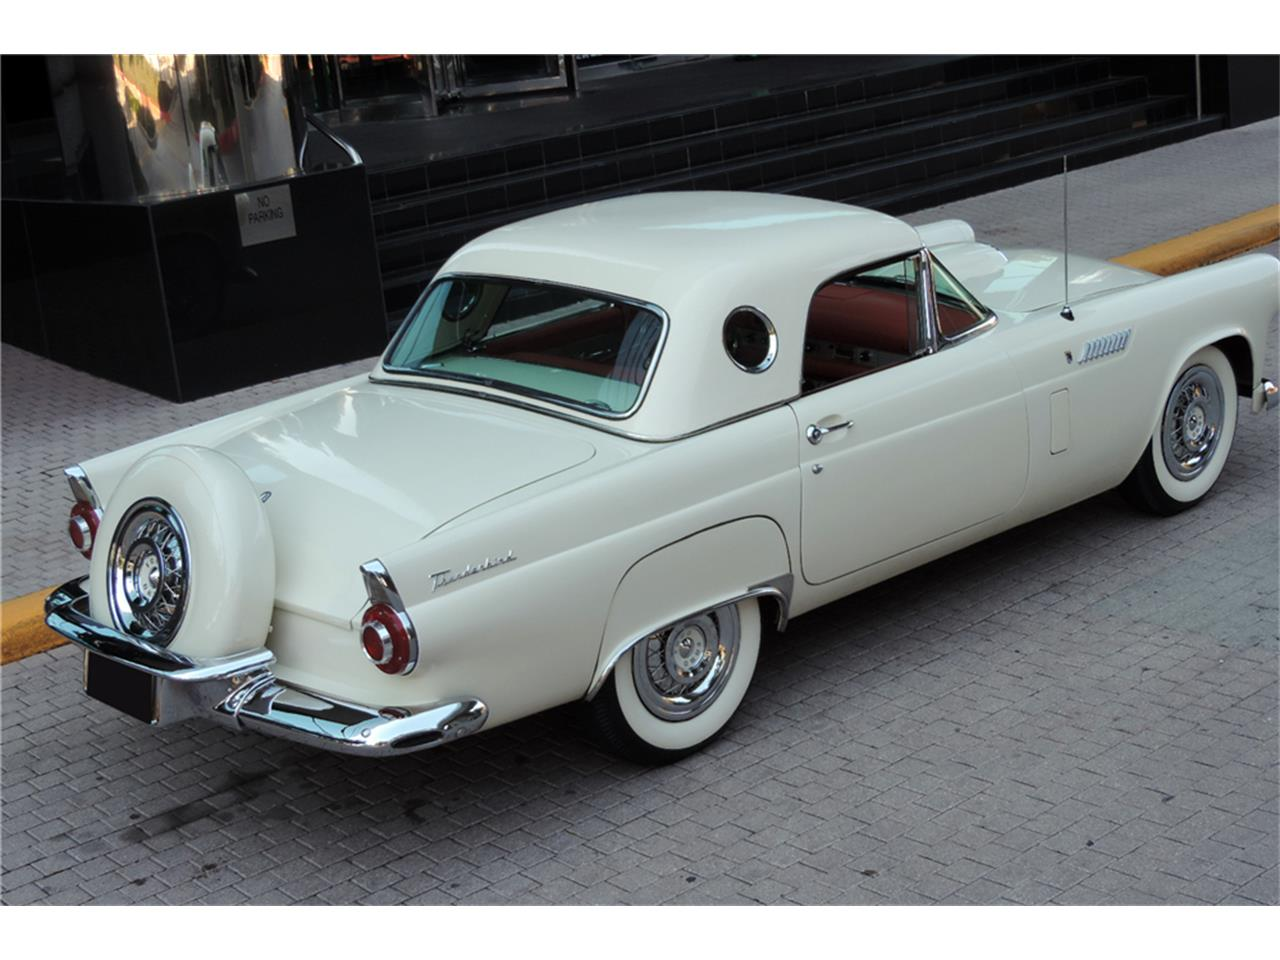 Large Picture of 1956 Ford Thunderbird located in Arizona Auction Vehicle Offered by Barrett-Jackson Auctions - MO5J